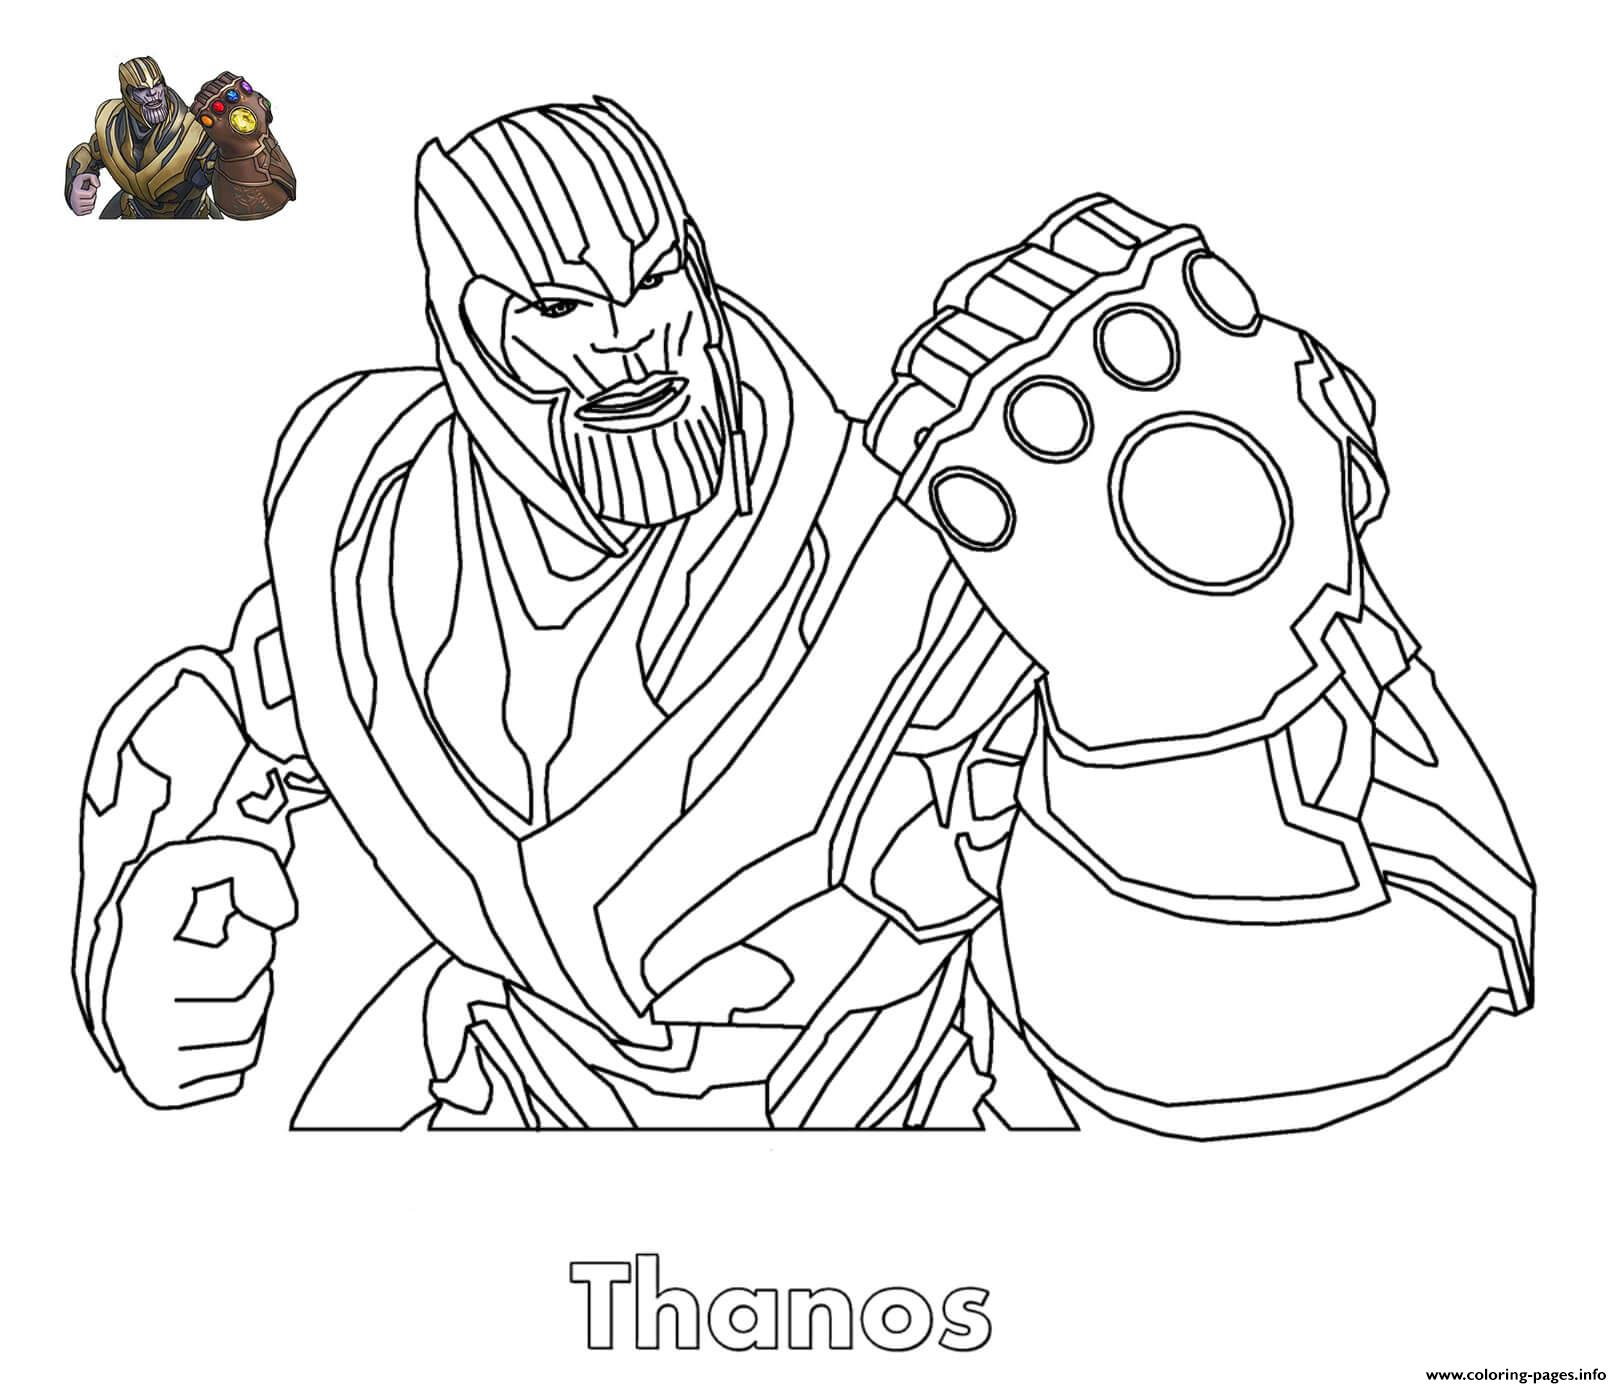 Thanos Fortnite Coloring Pages Printable